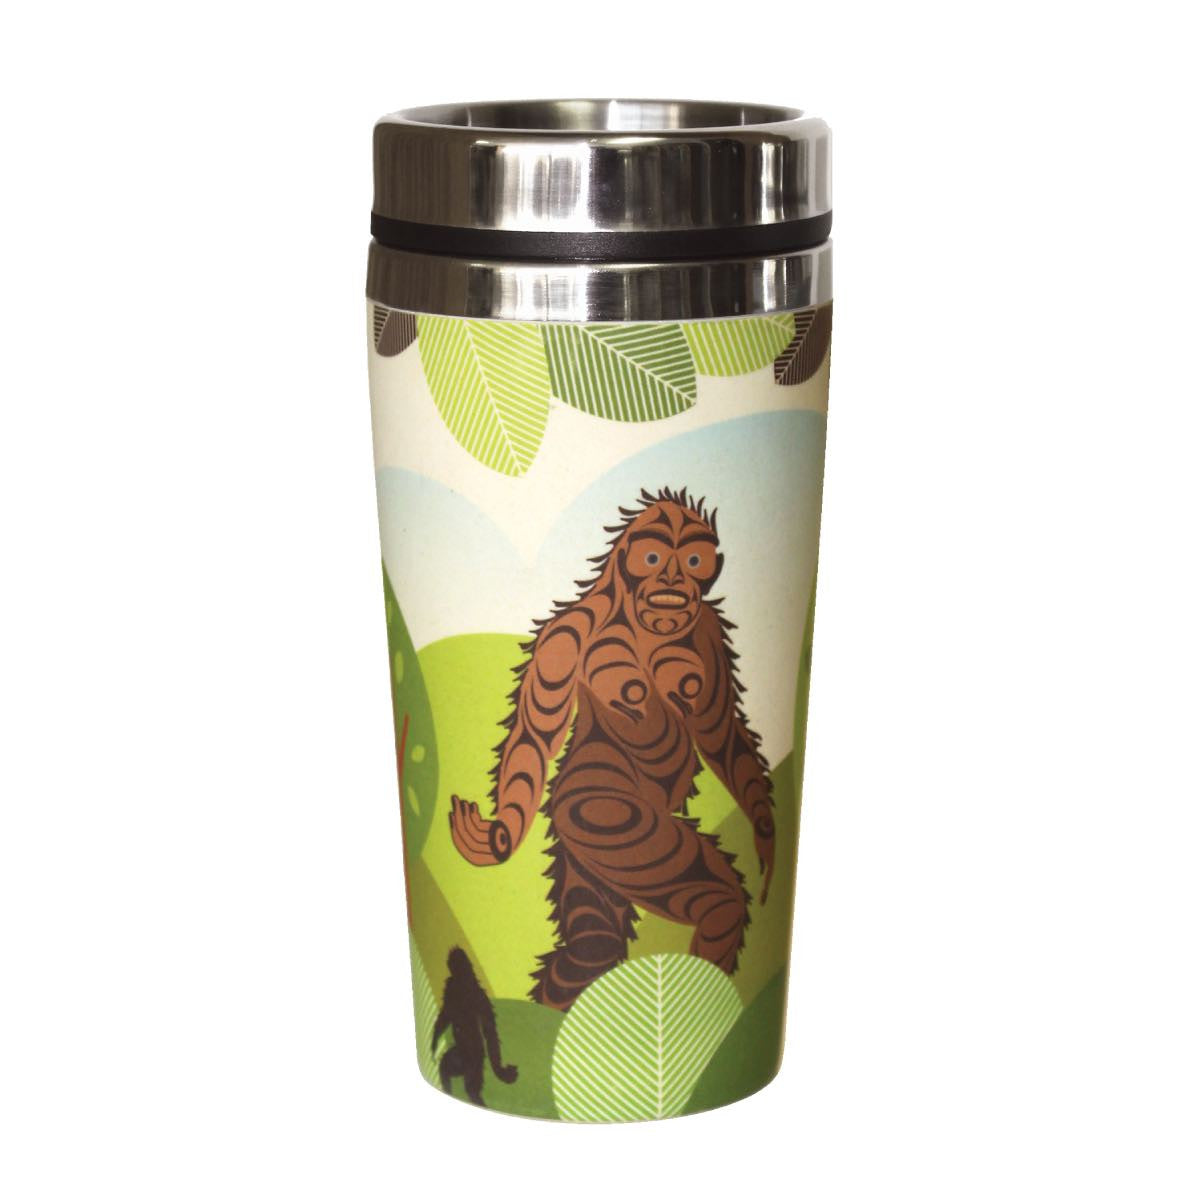 bamboo travel mug sasquatch big foot perfect gift unique gift reusable coffee mug